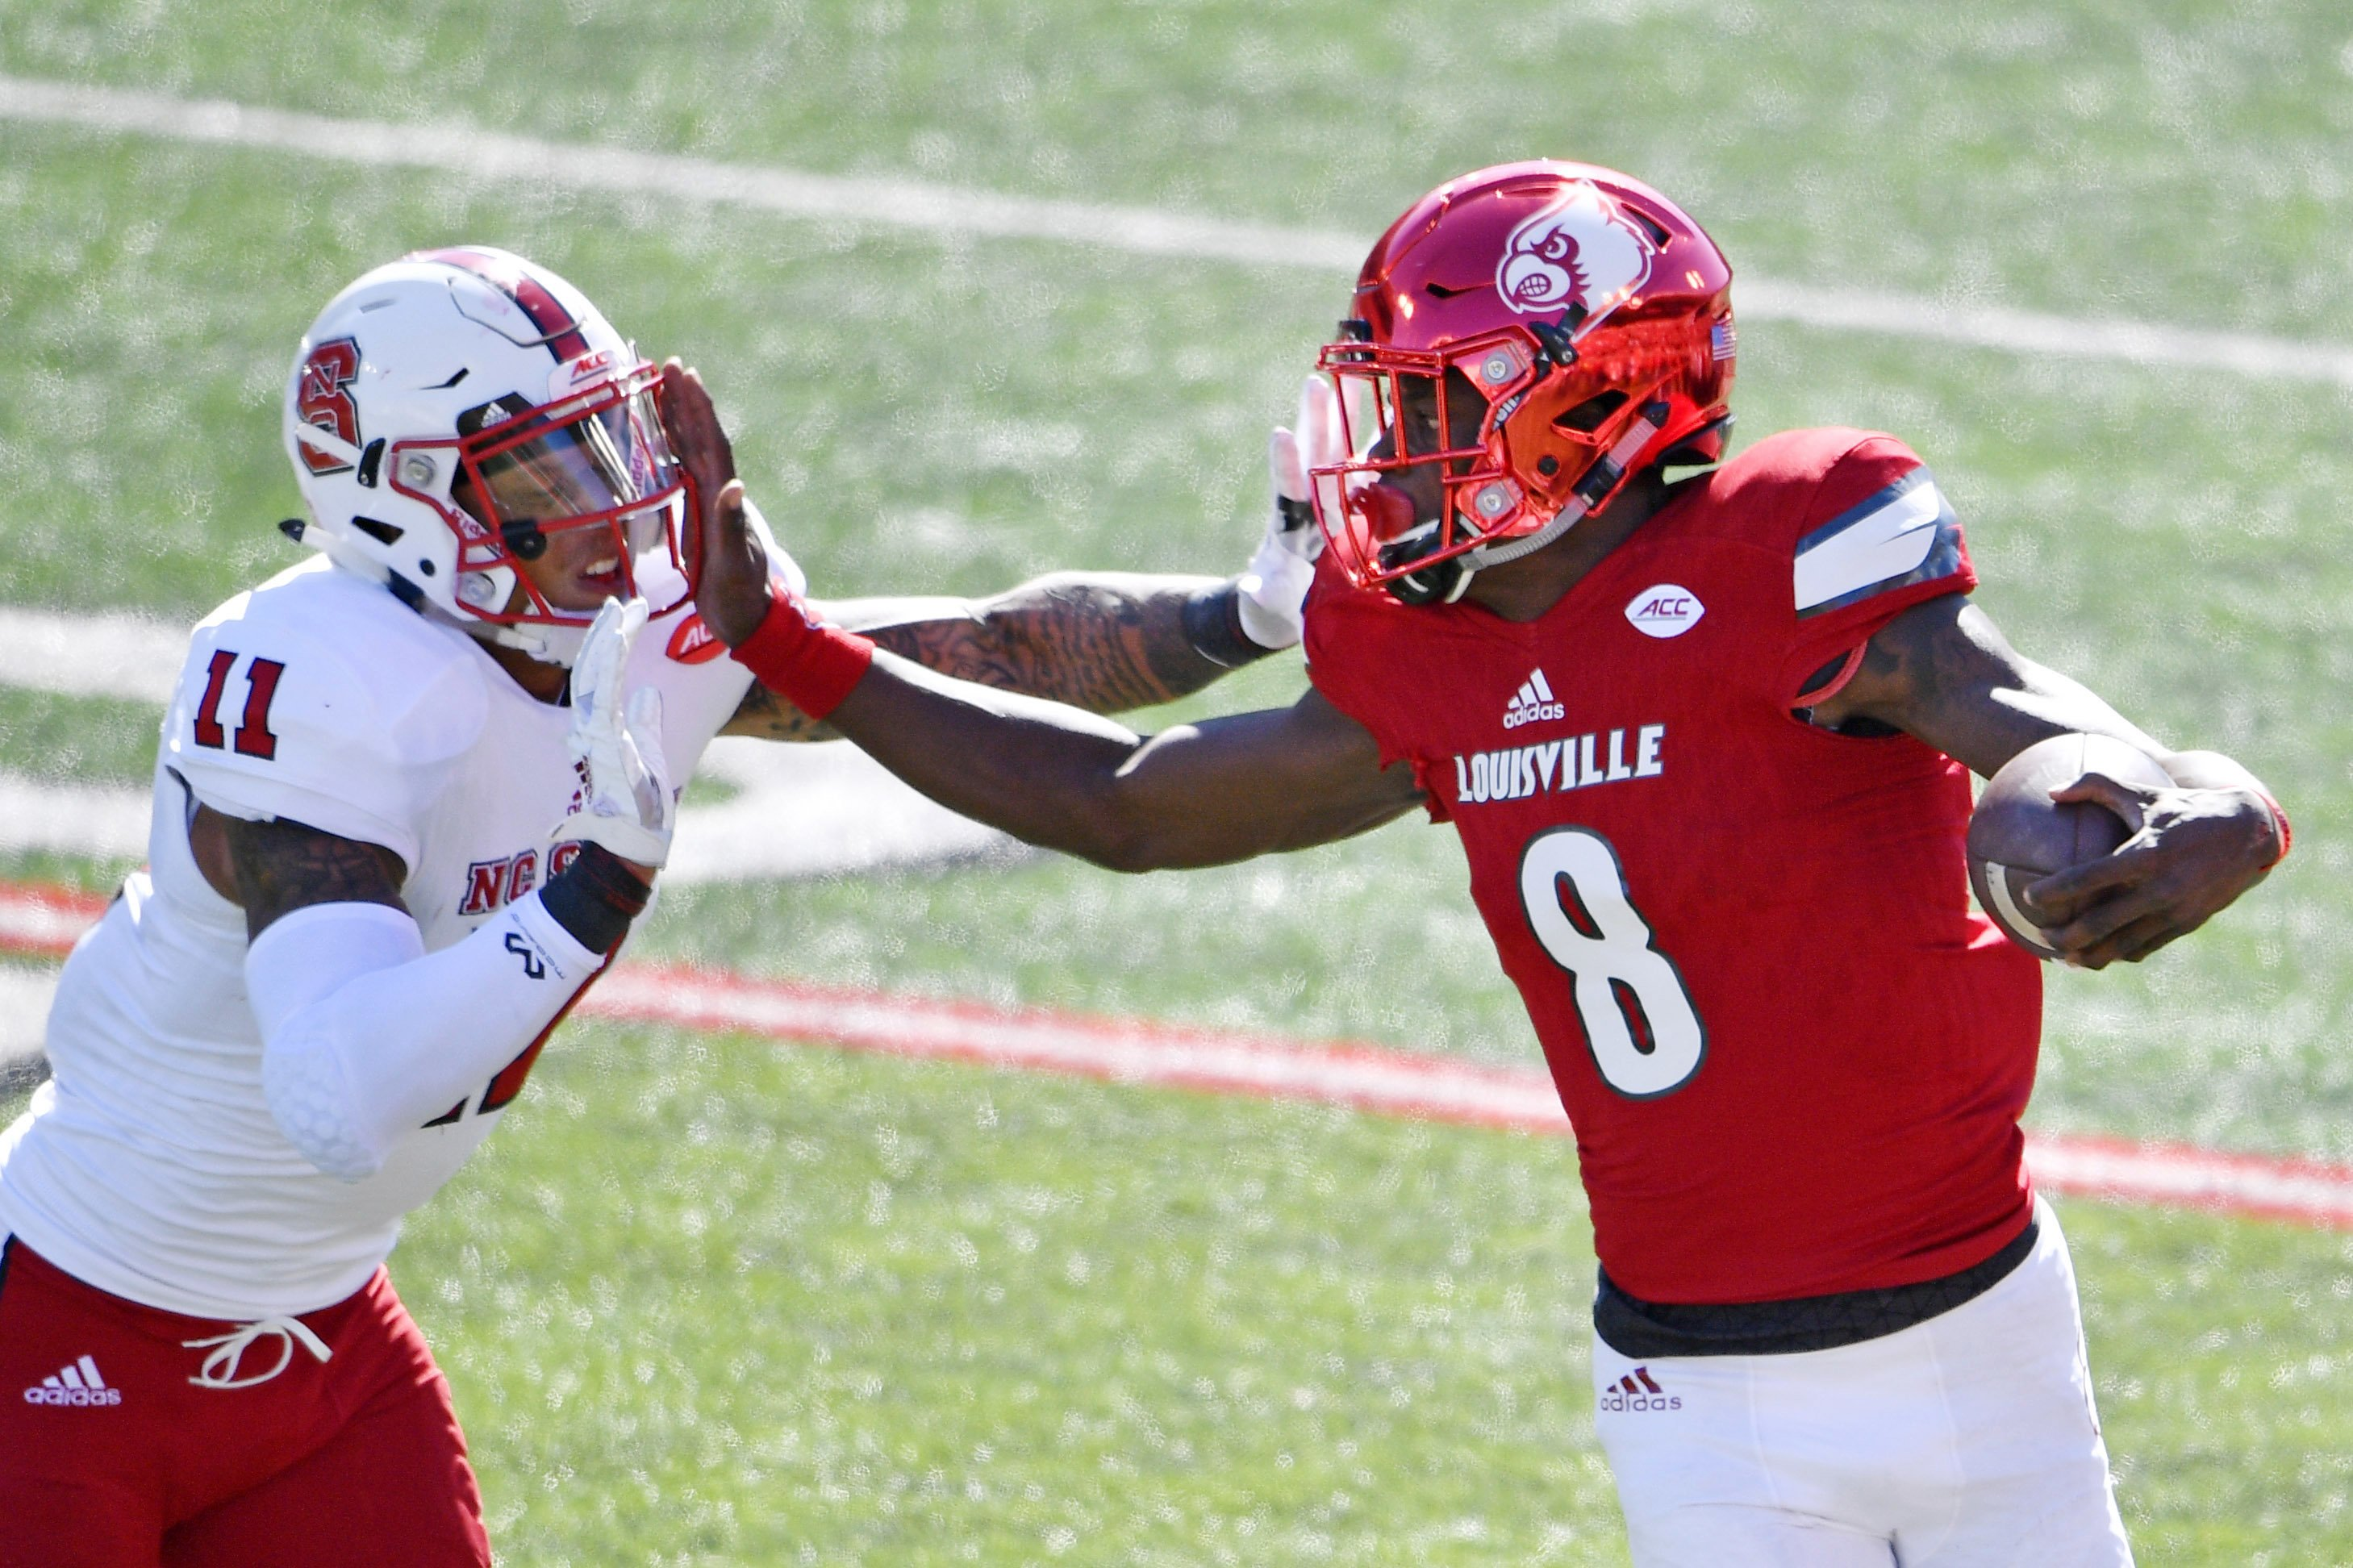 Lamar Jackson dodges rush and throws 75-yard TD pass